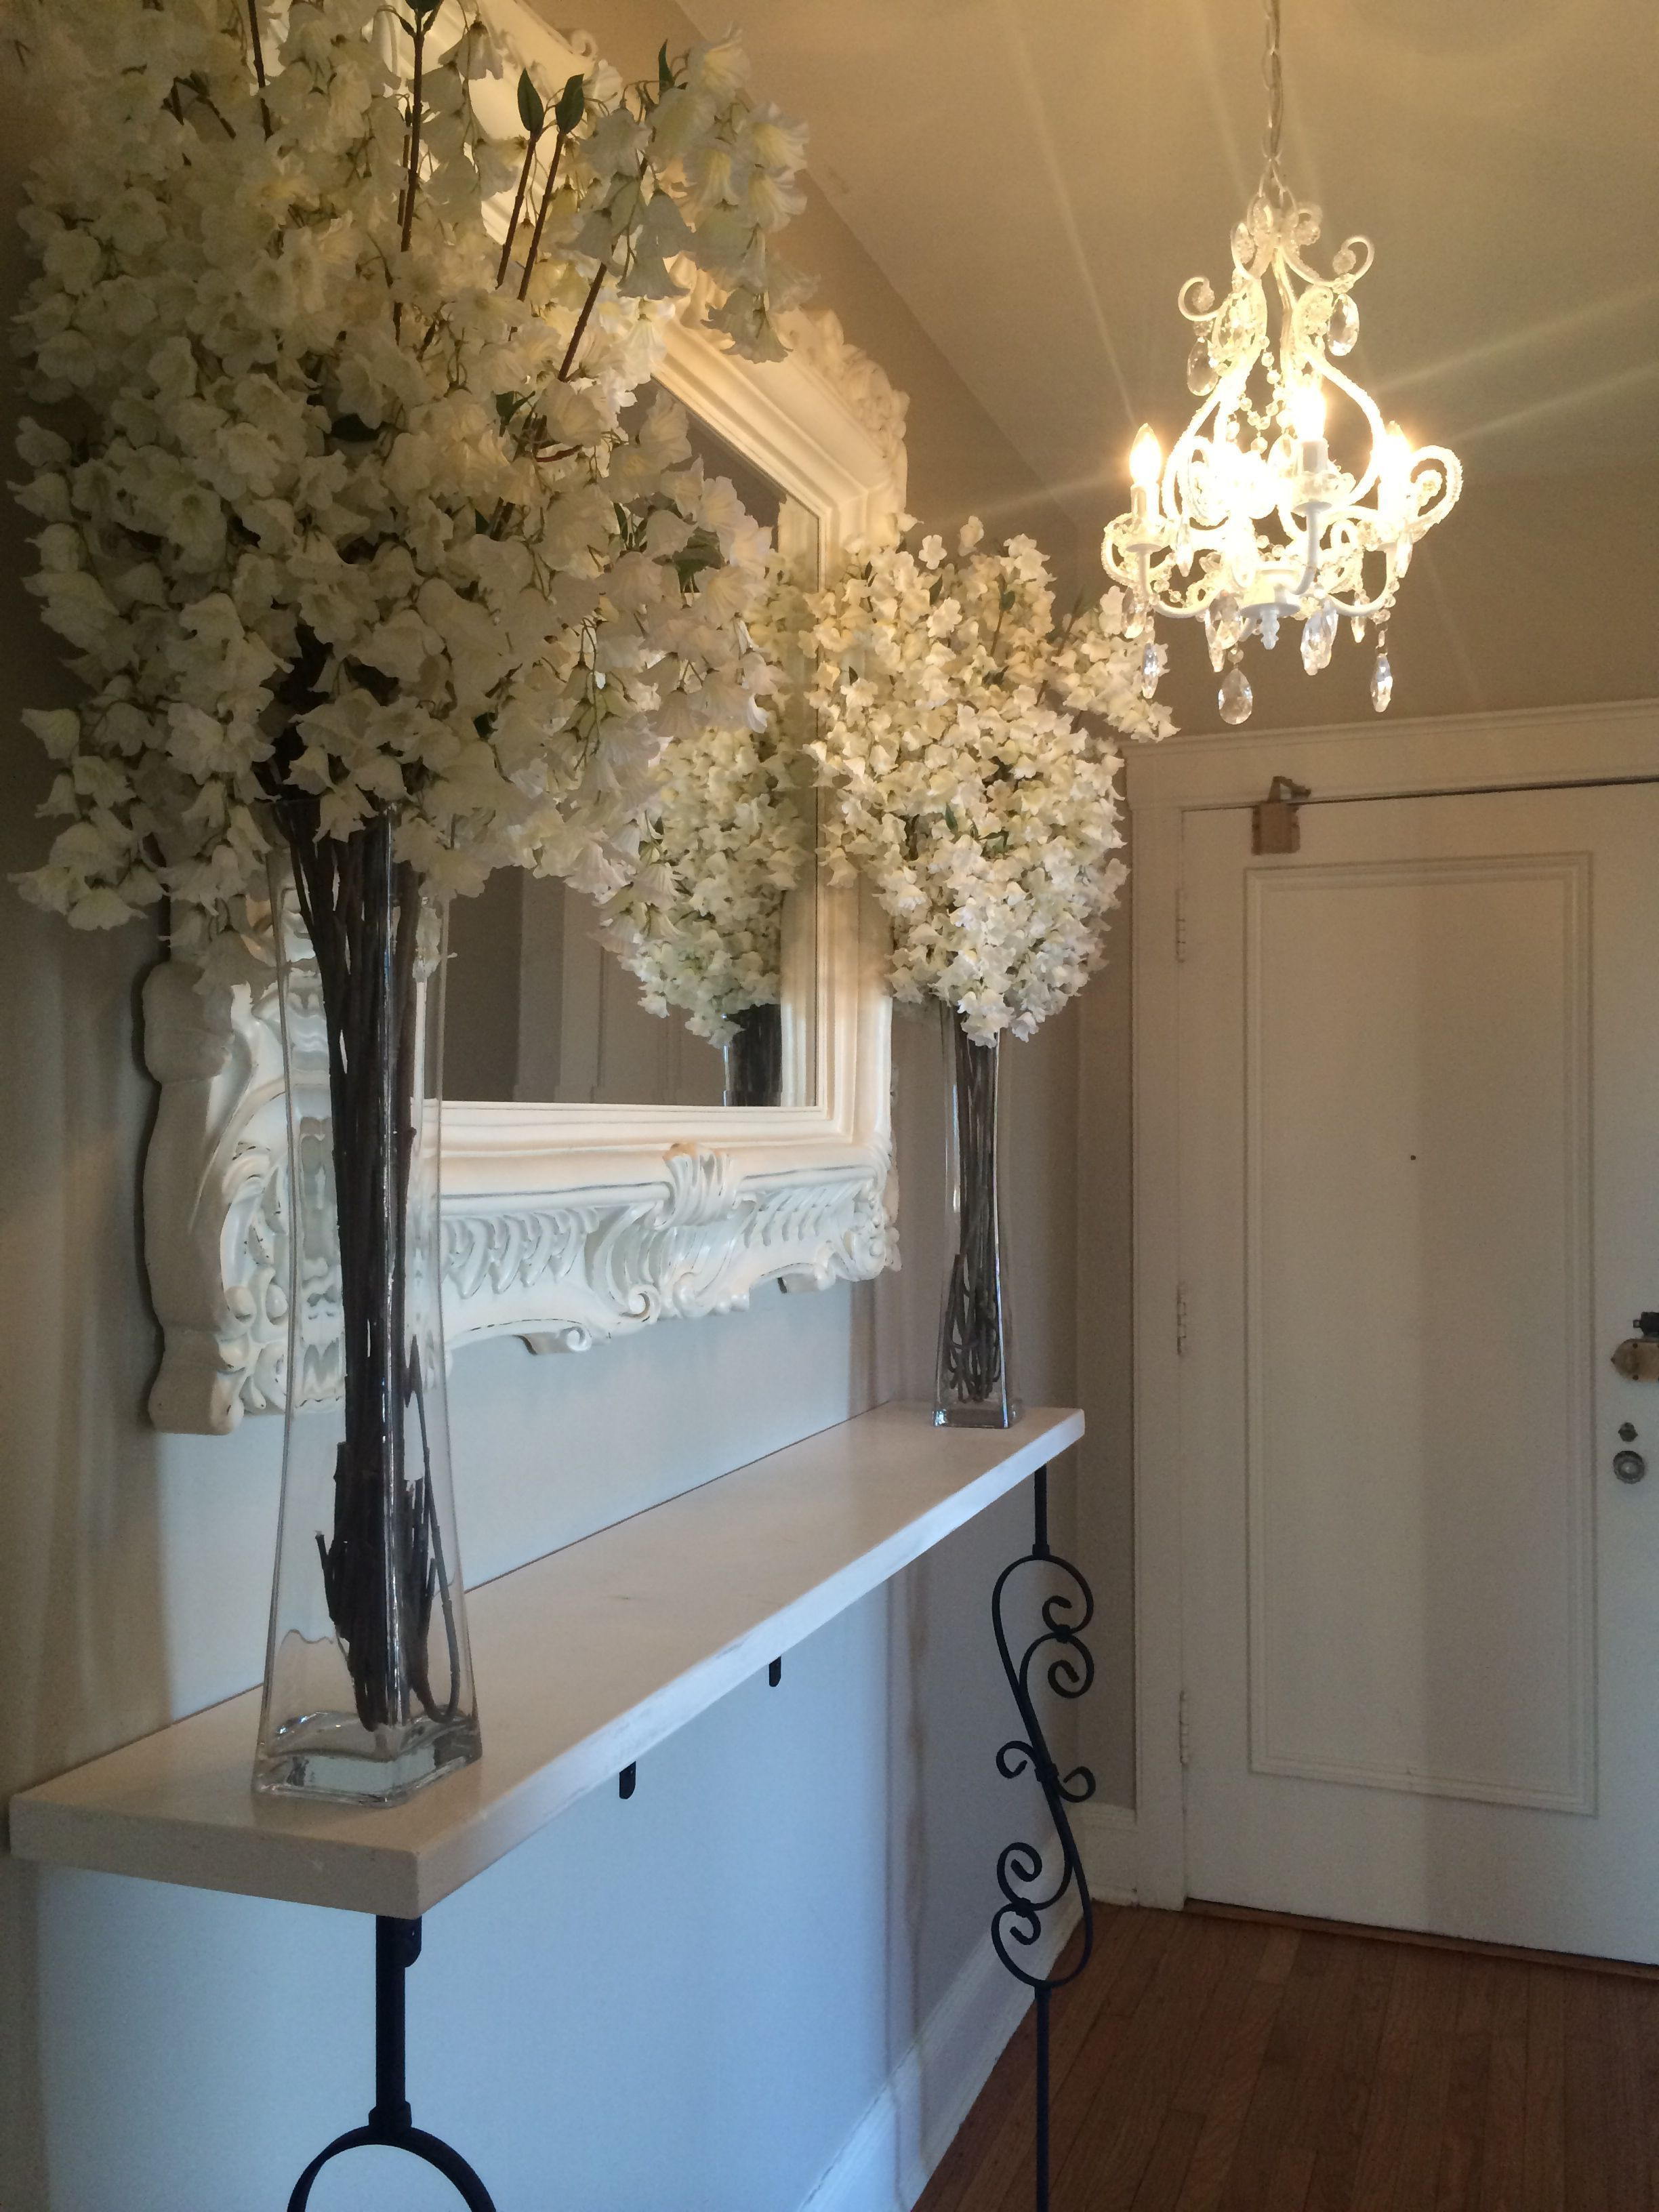 1930s house hallway ideas  Foyer  great narrow hallway idea  Hallway ideas  Pinterest  Foyers